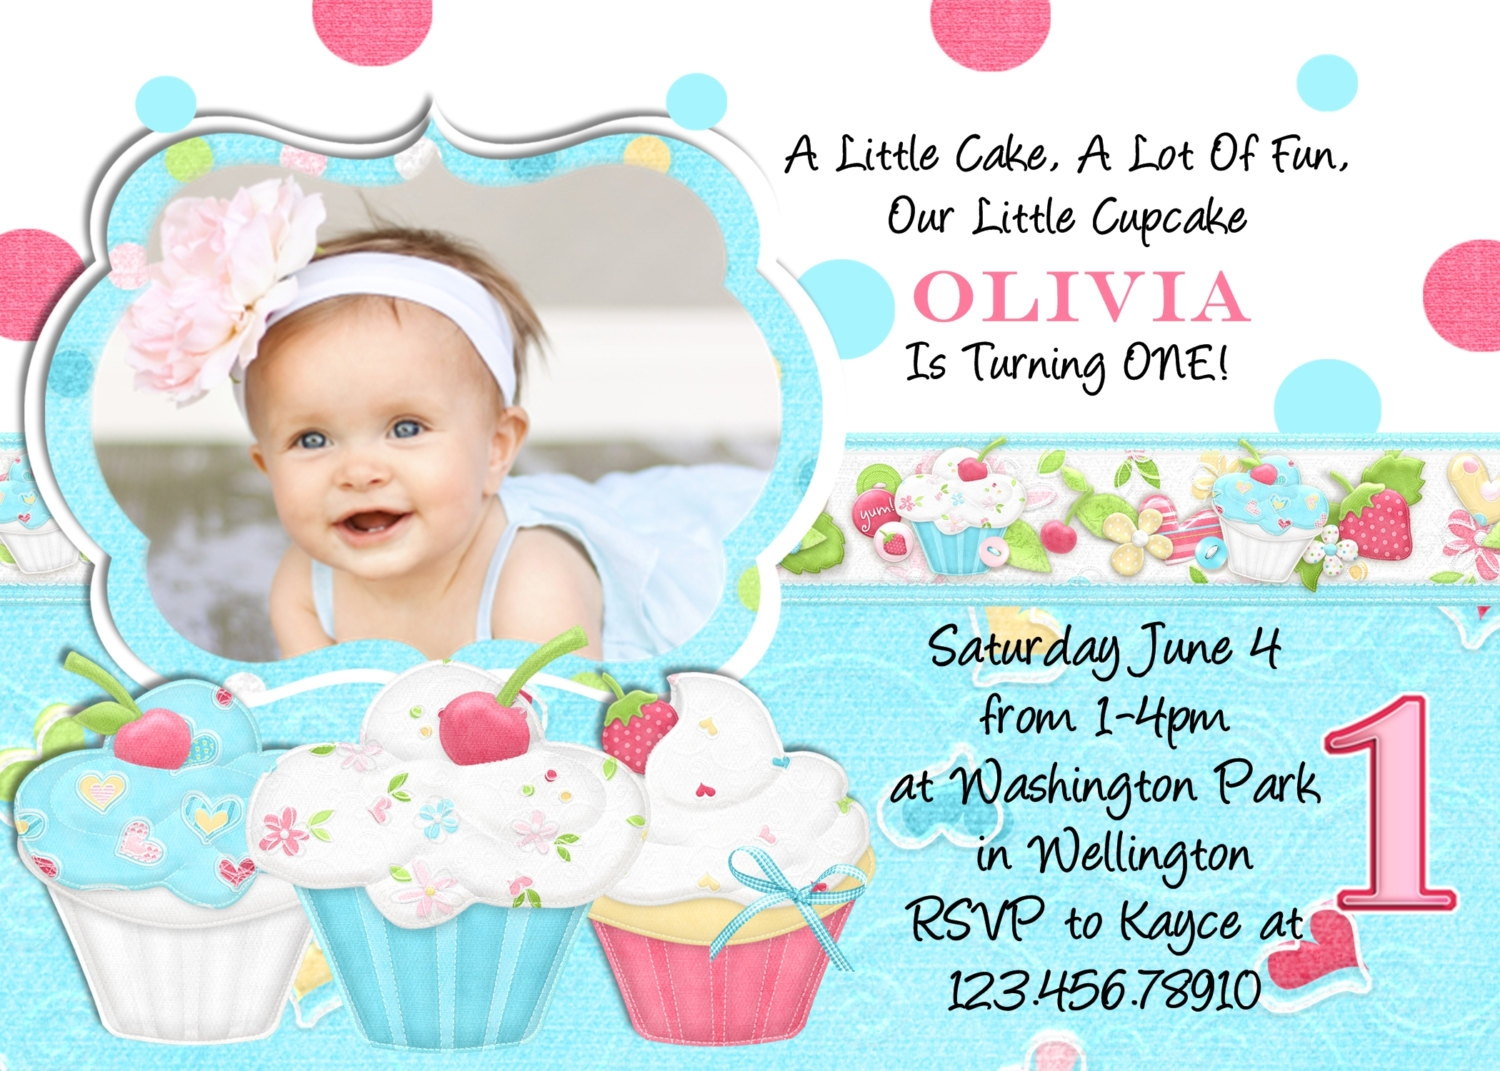 designs for invitation cards birthday ; free-printable-card-blue-and-white-background-your-daughter-photo-in-unique-frame-decorated-with-sweet-cupcakes-picture-and-black-coloured-text